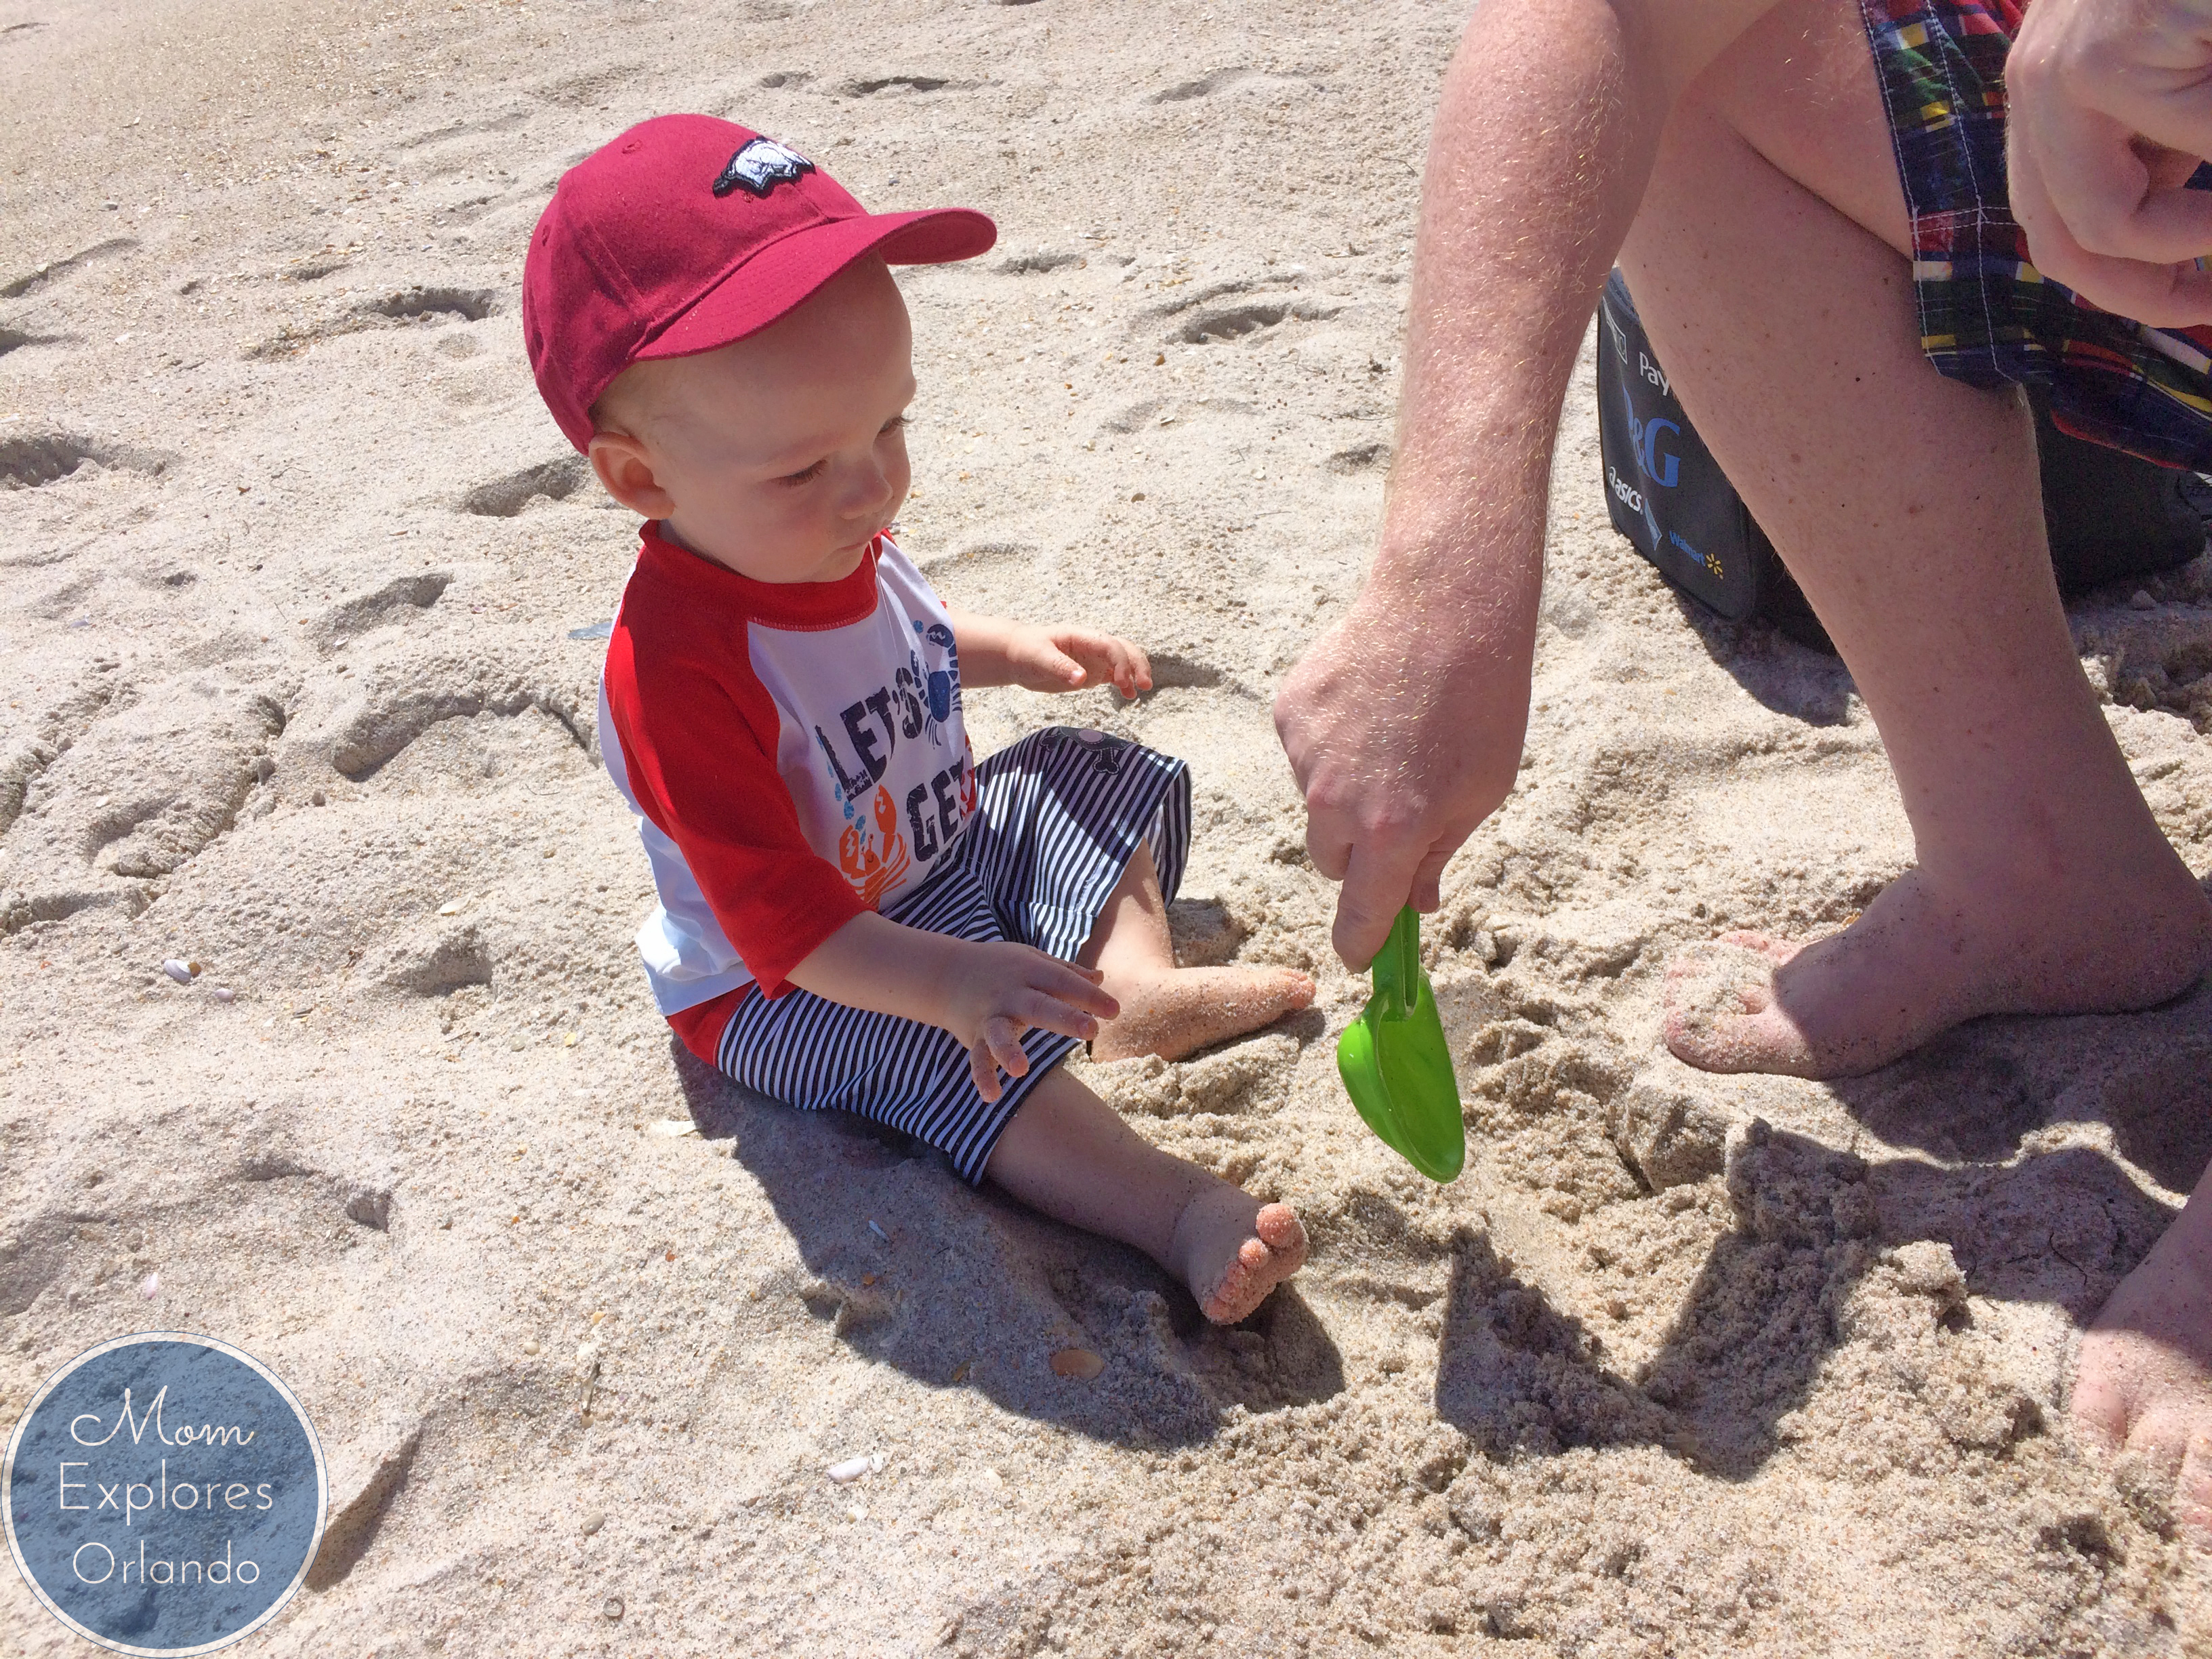 Central Florida's Best Beach | Mom Explores Orlando